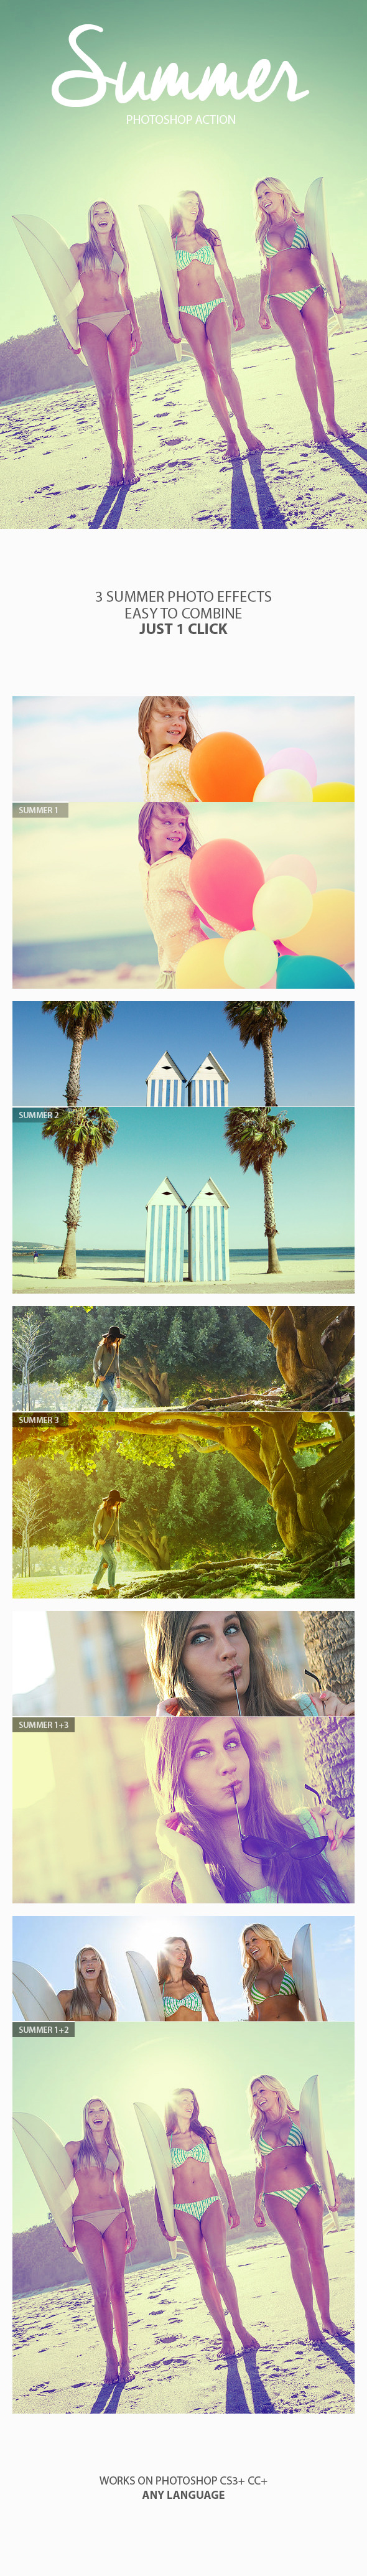 GraphicRiver Summer Photoshop Action 11838603